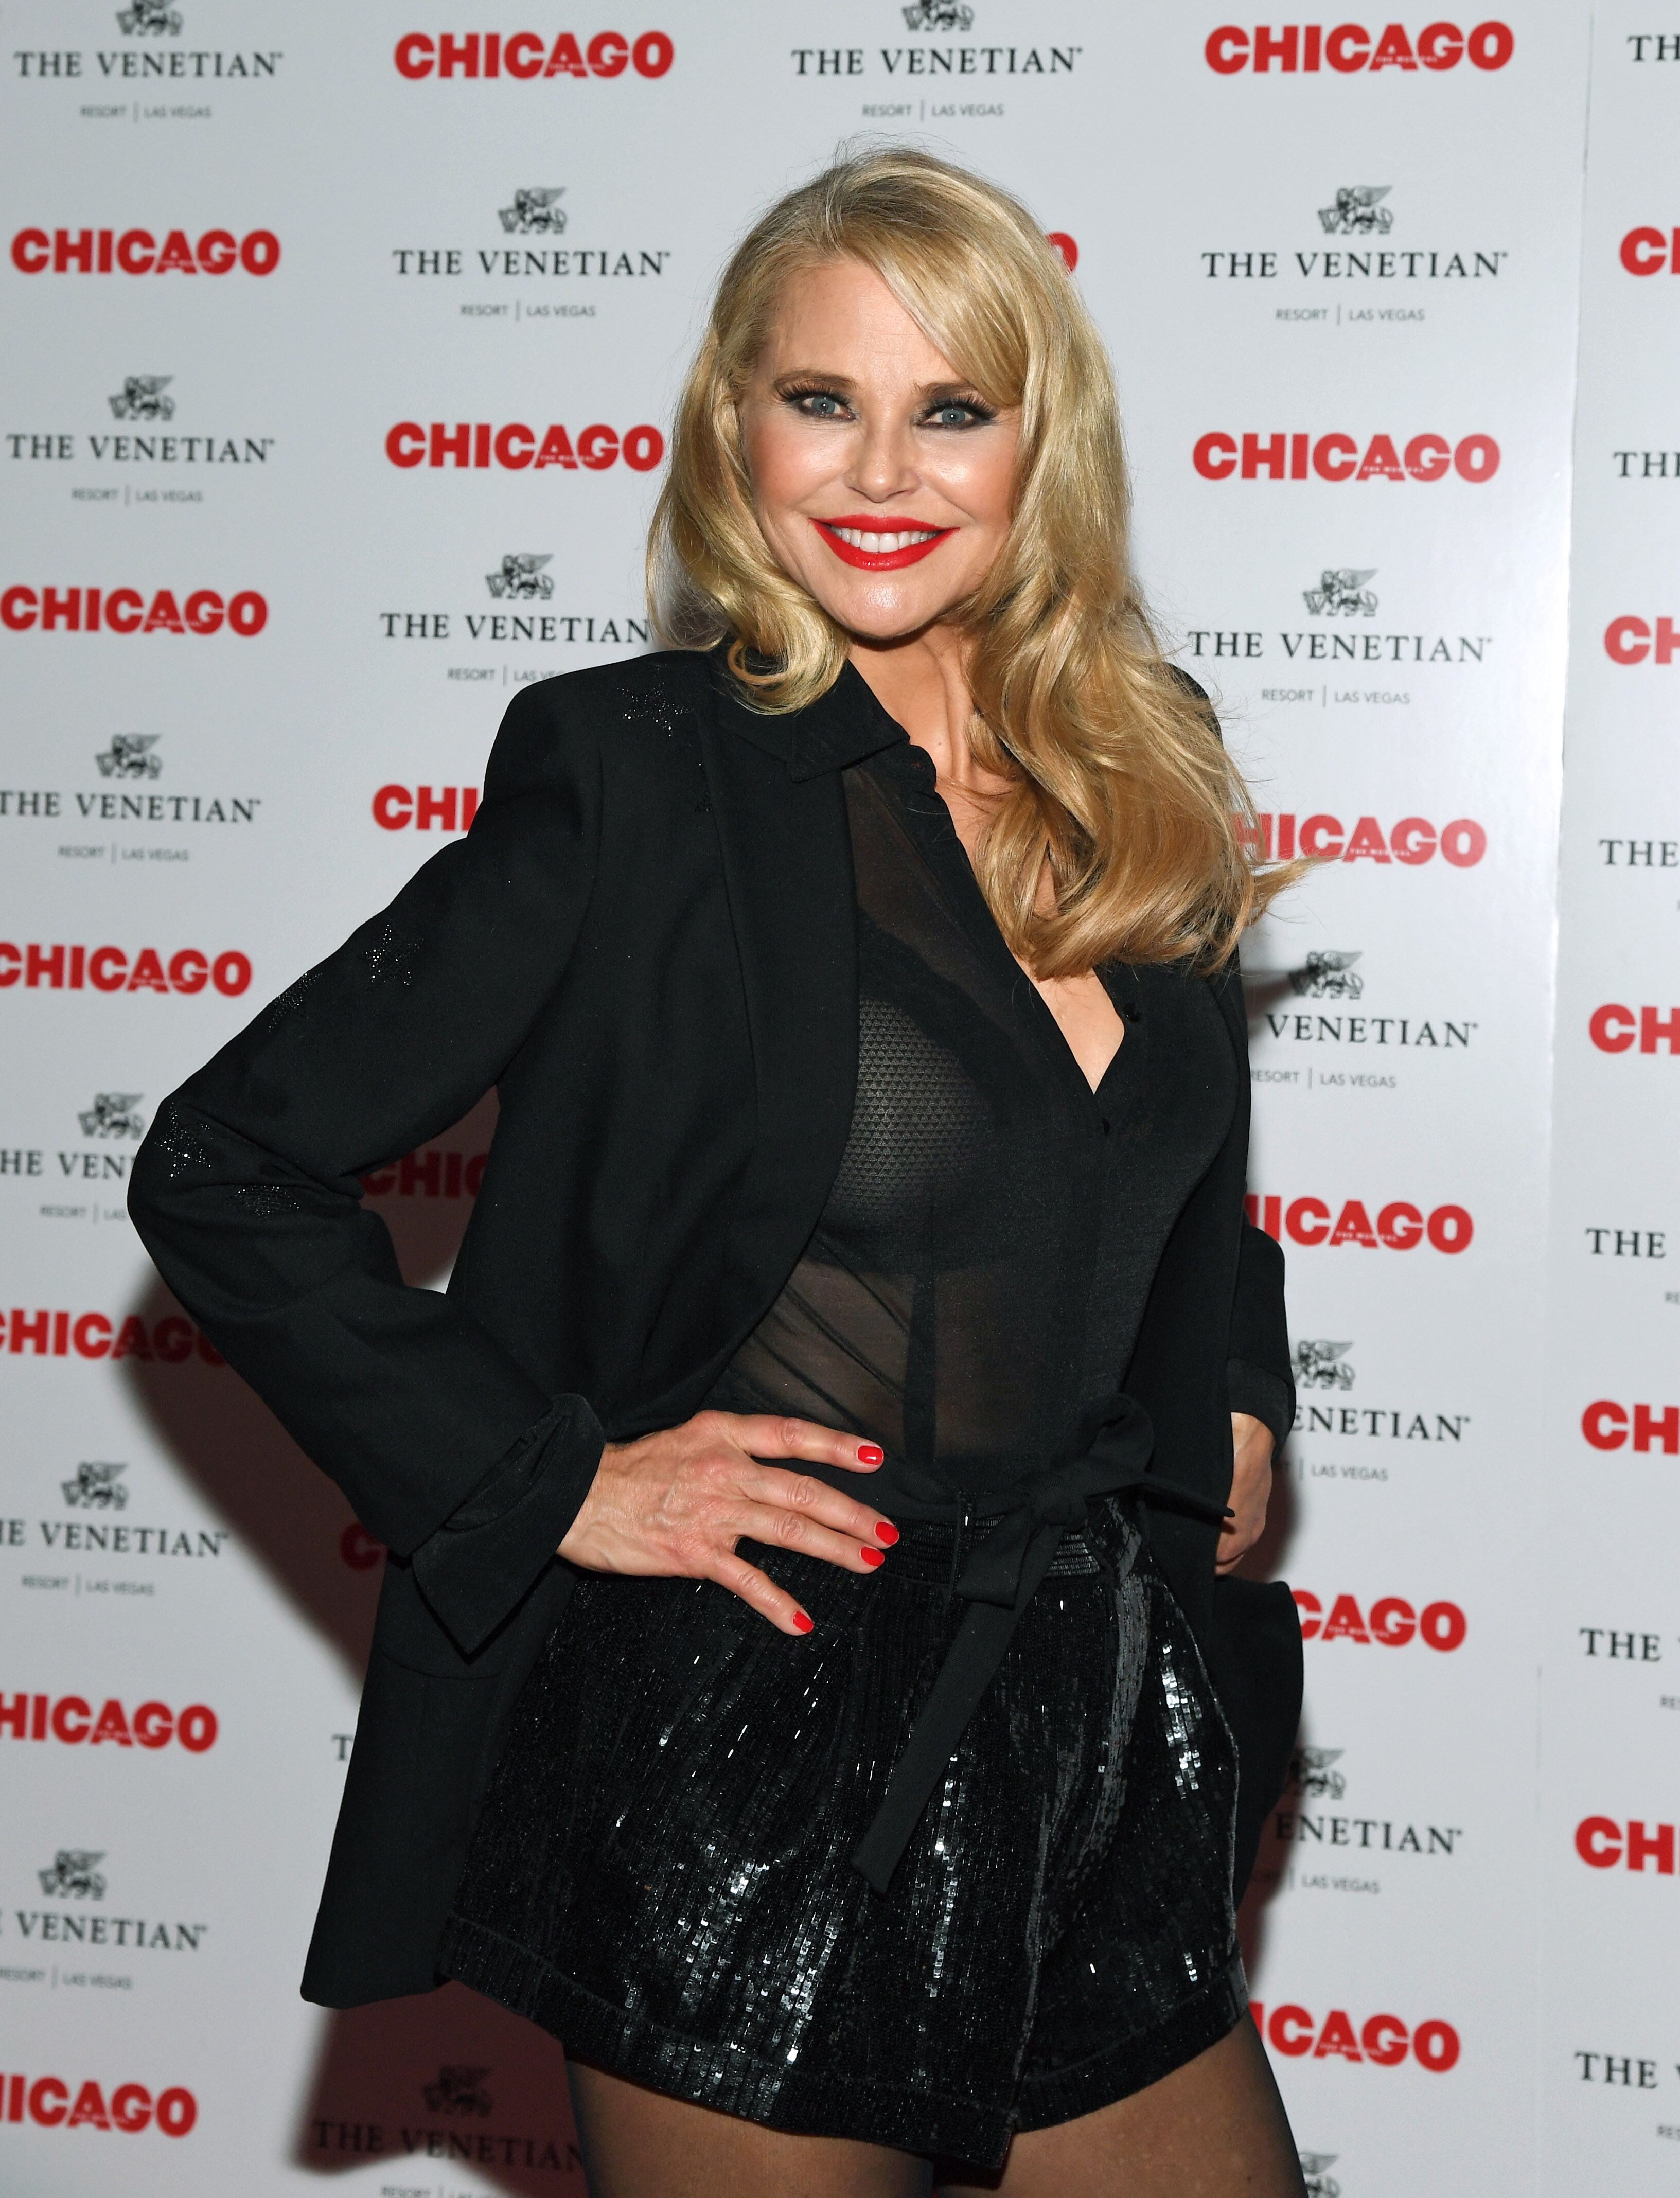 """Christie Brinkley attends a reception at Chica restaurant after the opening night of a limited engagement of the musical """"Chicago"""" at The Venetian Las Vegas on April 10, 2019 in Las Vegas, Nevada   Photo: Getty Images"""